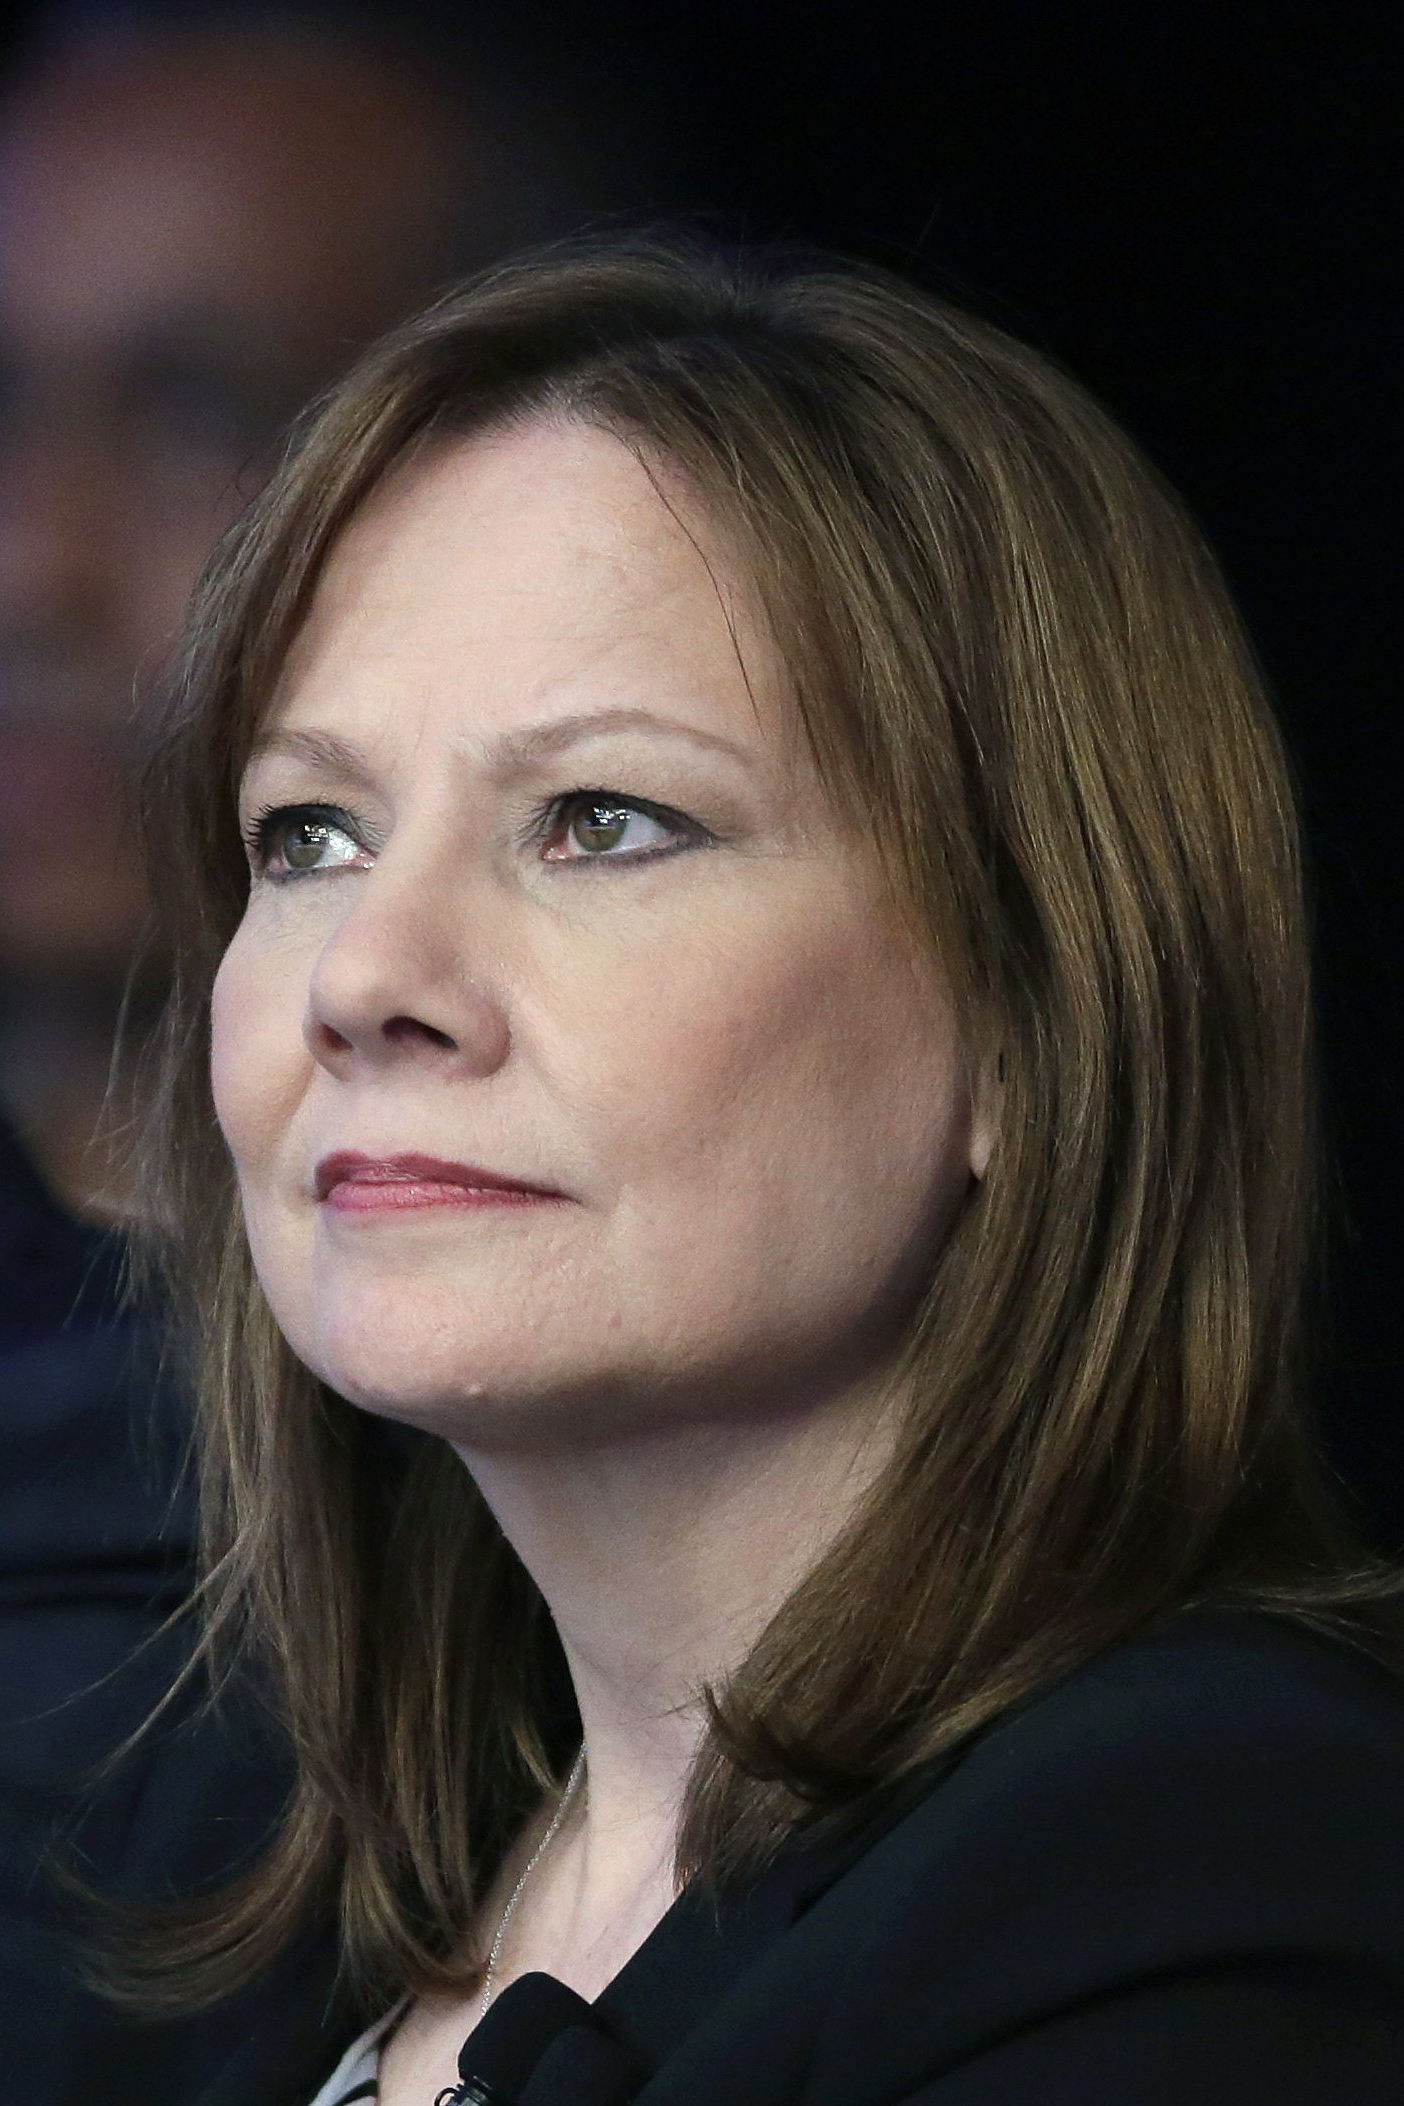 Mary Barra, CEO of General Motors watches the introduction of new Chevrolet cars at the New York International Auto Show, in New York City, April 15, 2014.